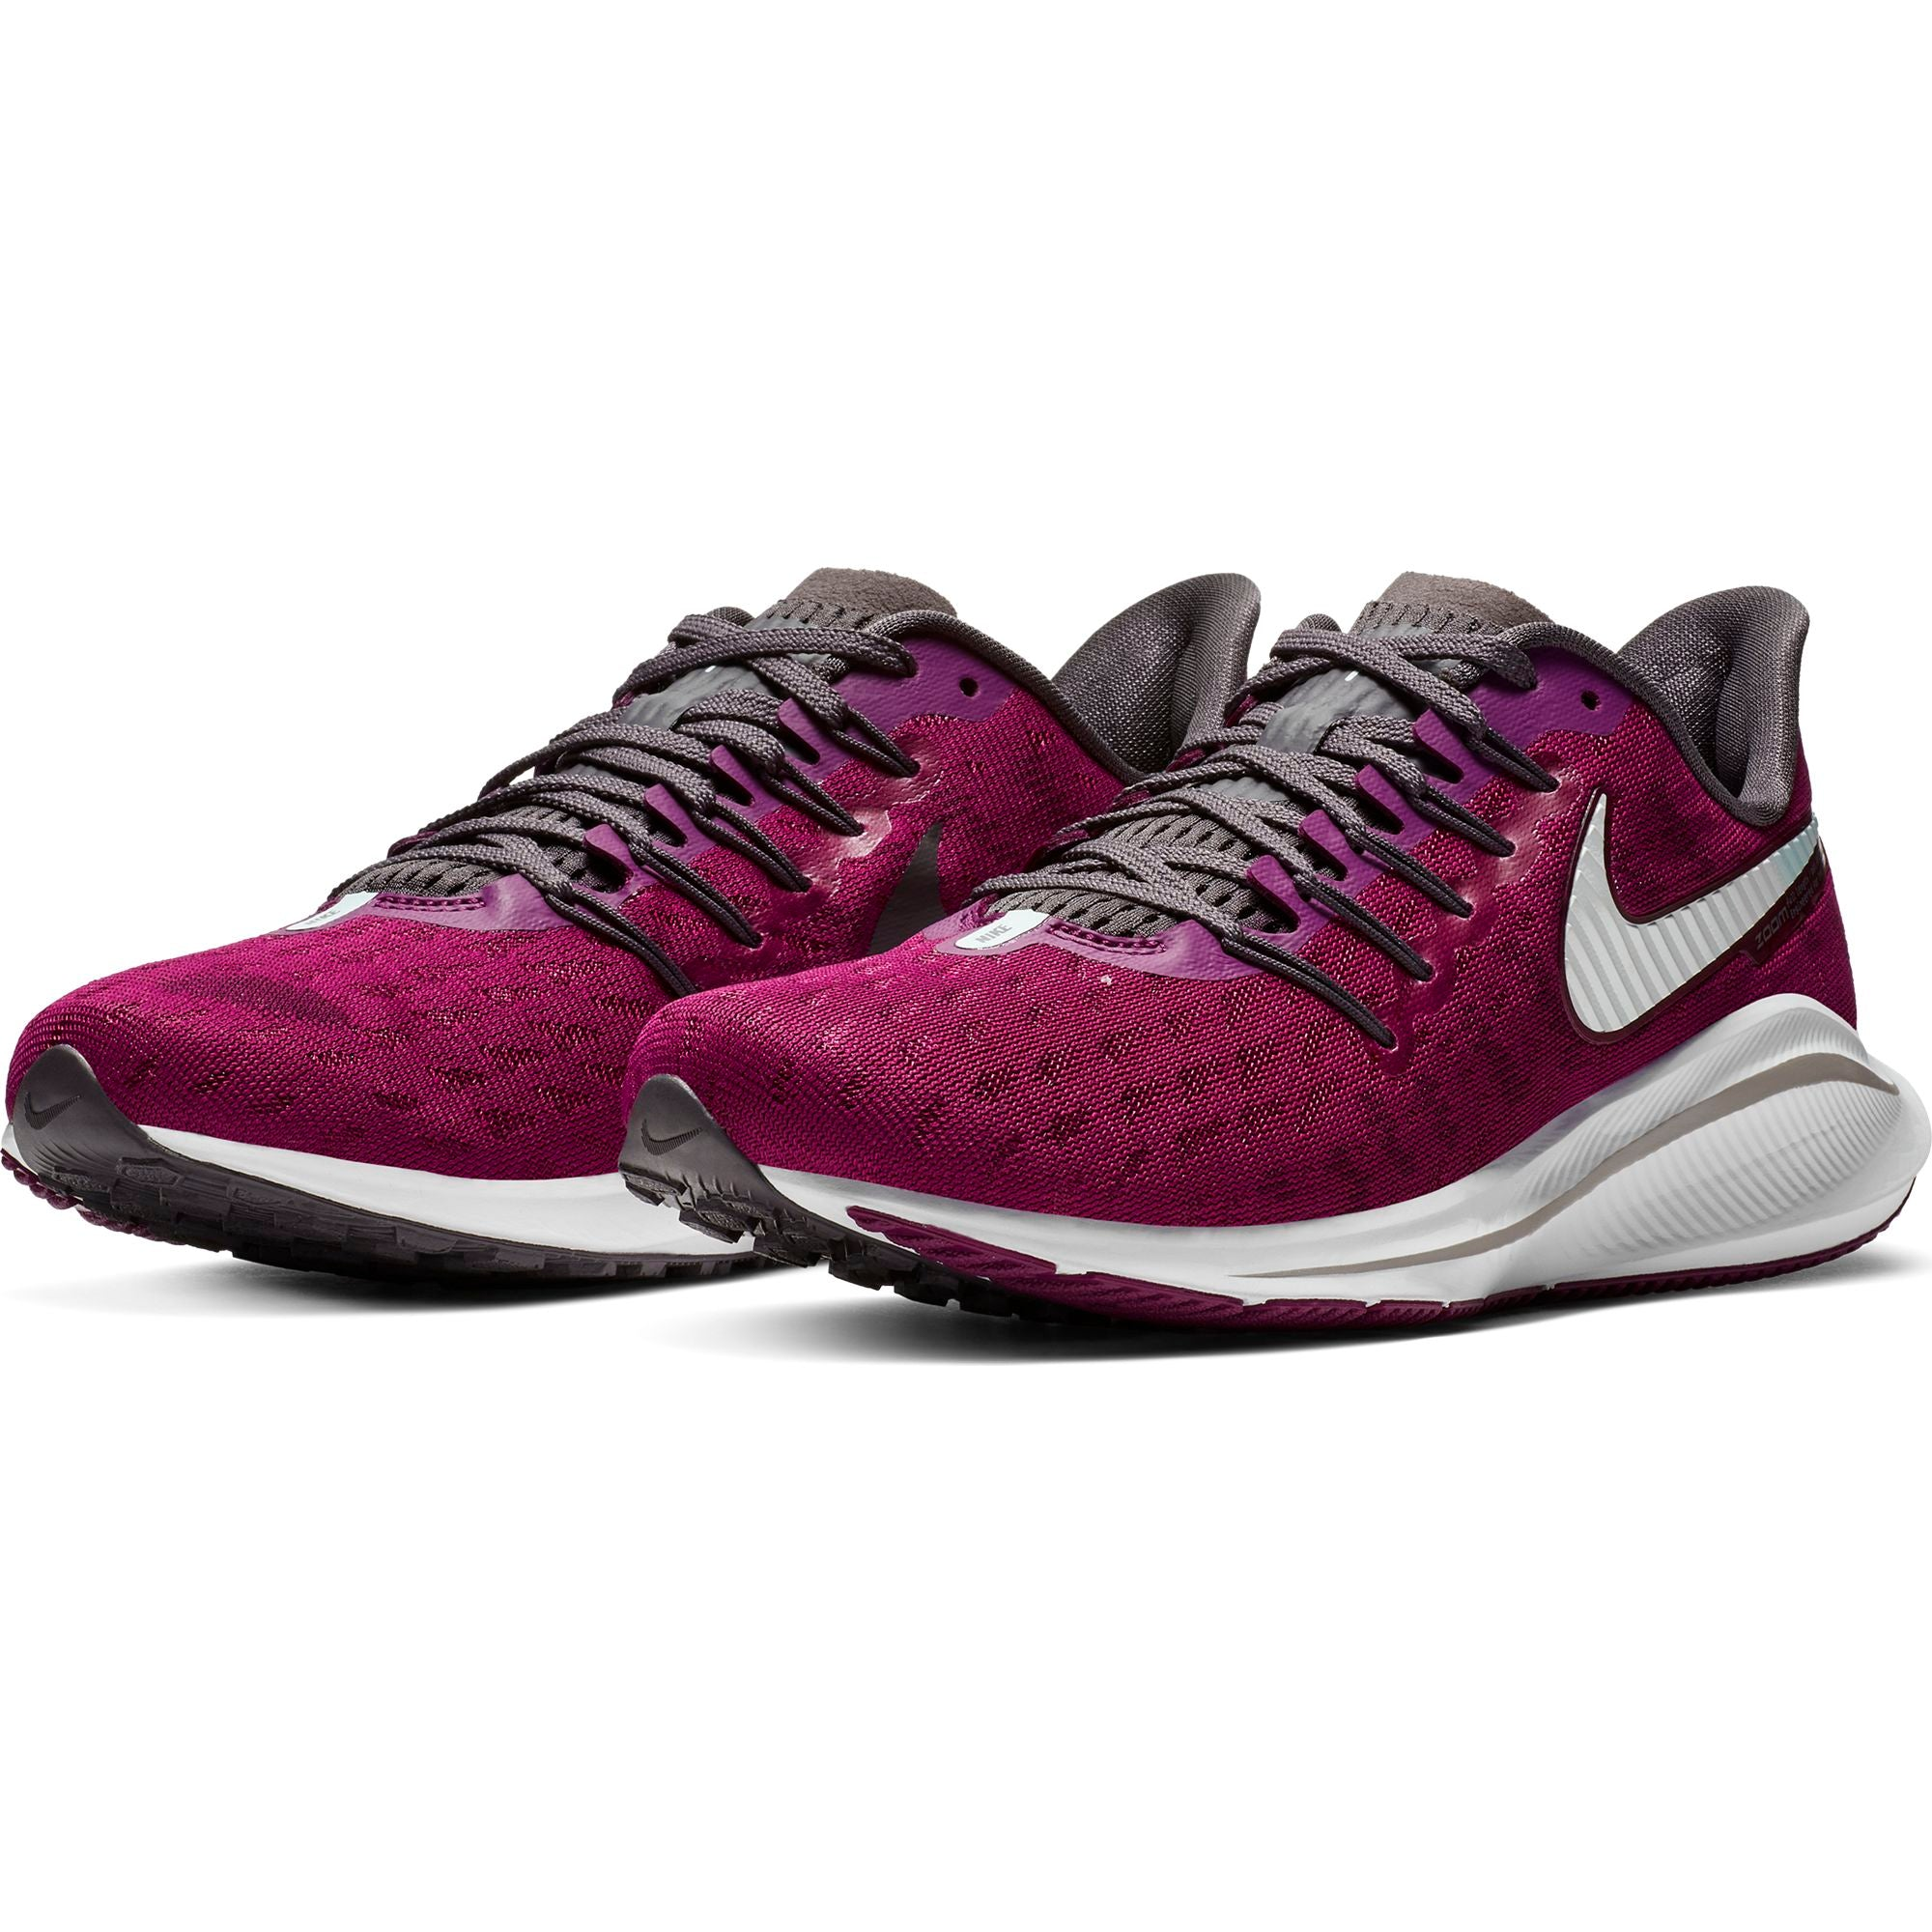 ... Women s Air Zoom Vomero 14 Running Shoe - True Berry White Thunder  Grey  ... eaf10aba1